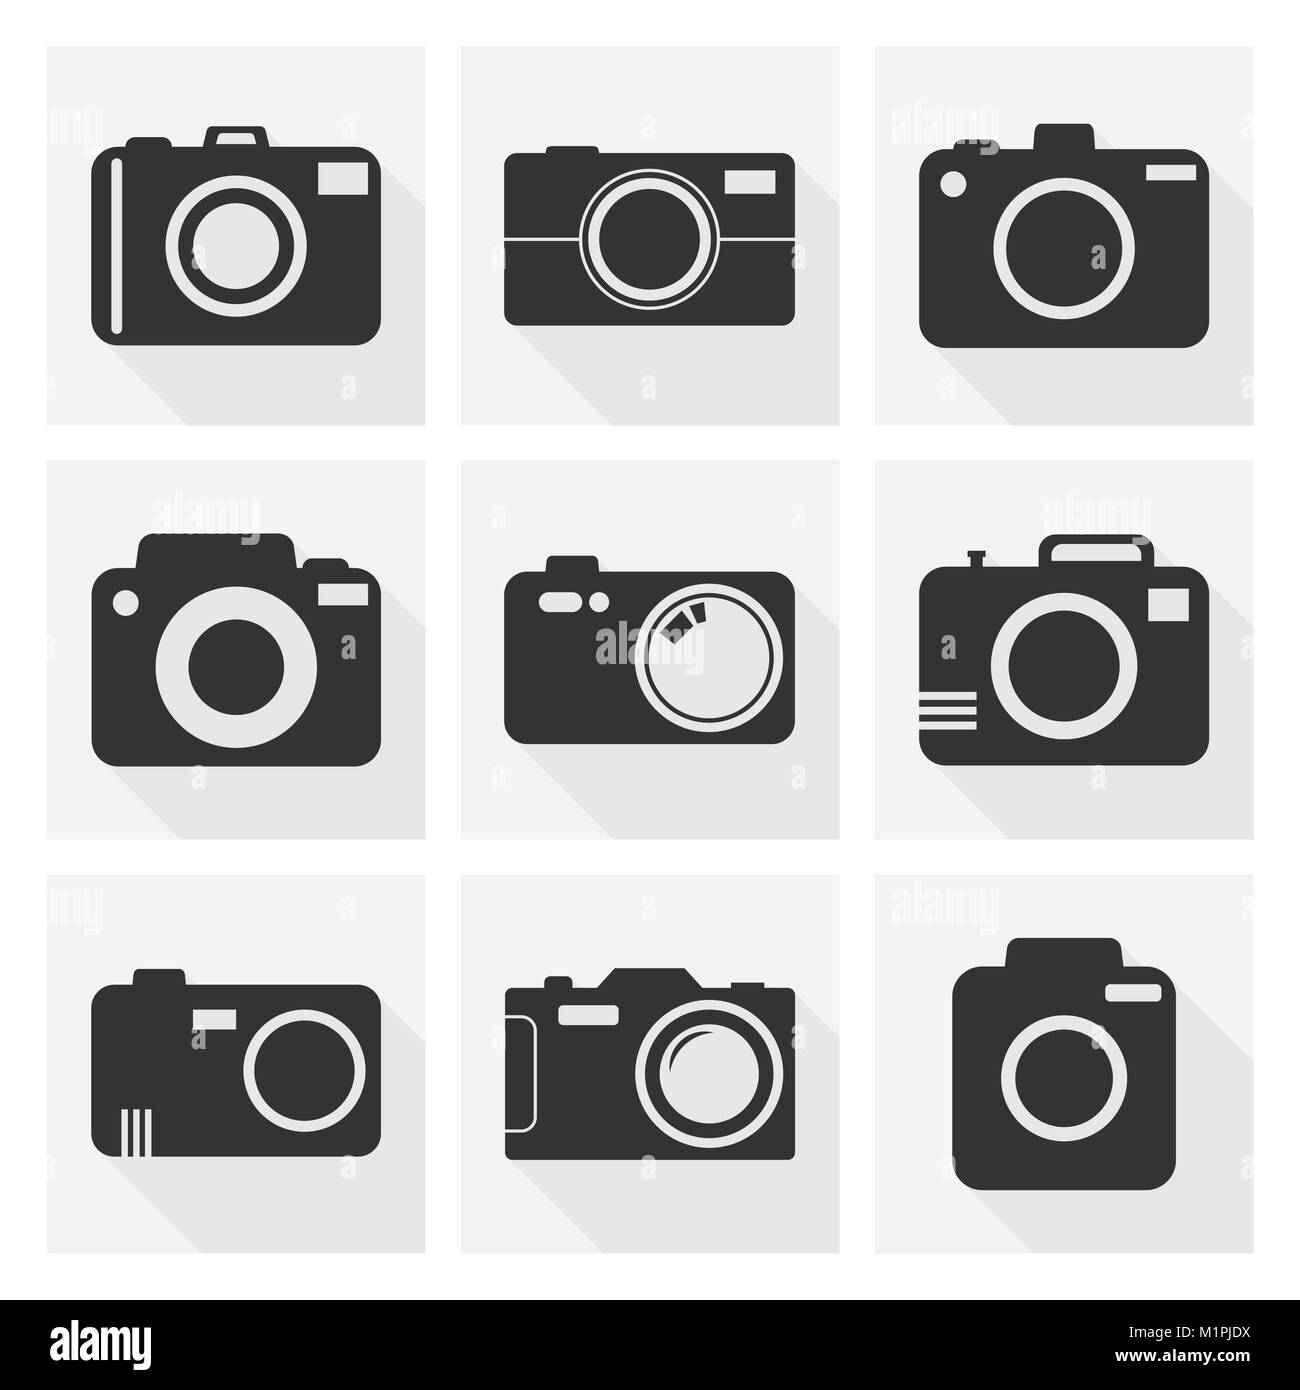 Camera icon set on white background with long shadow. Vector illustration in flat style with photography icons. - Stock Vector